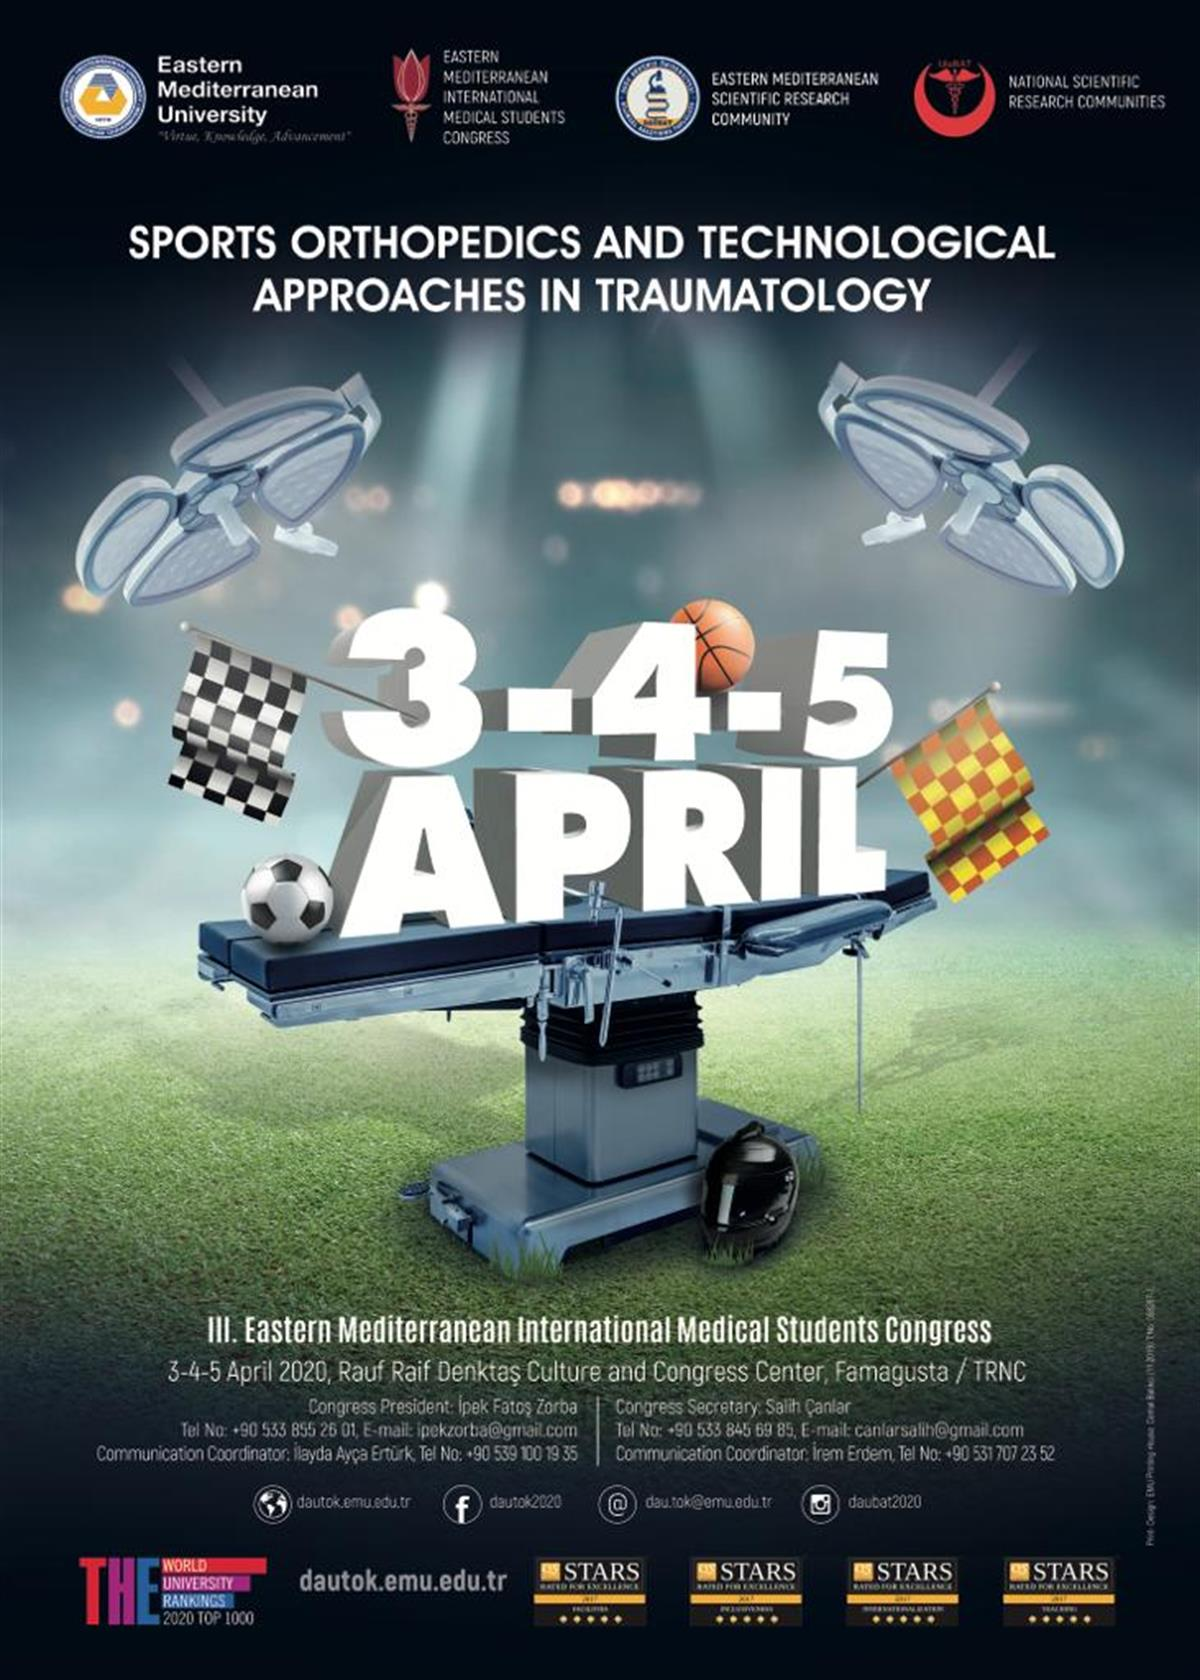 Sports Orthopedics and Technological Approaches in Traumatology